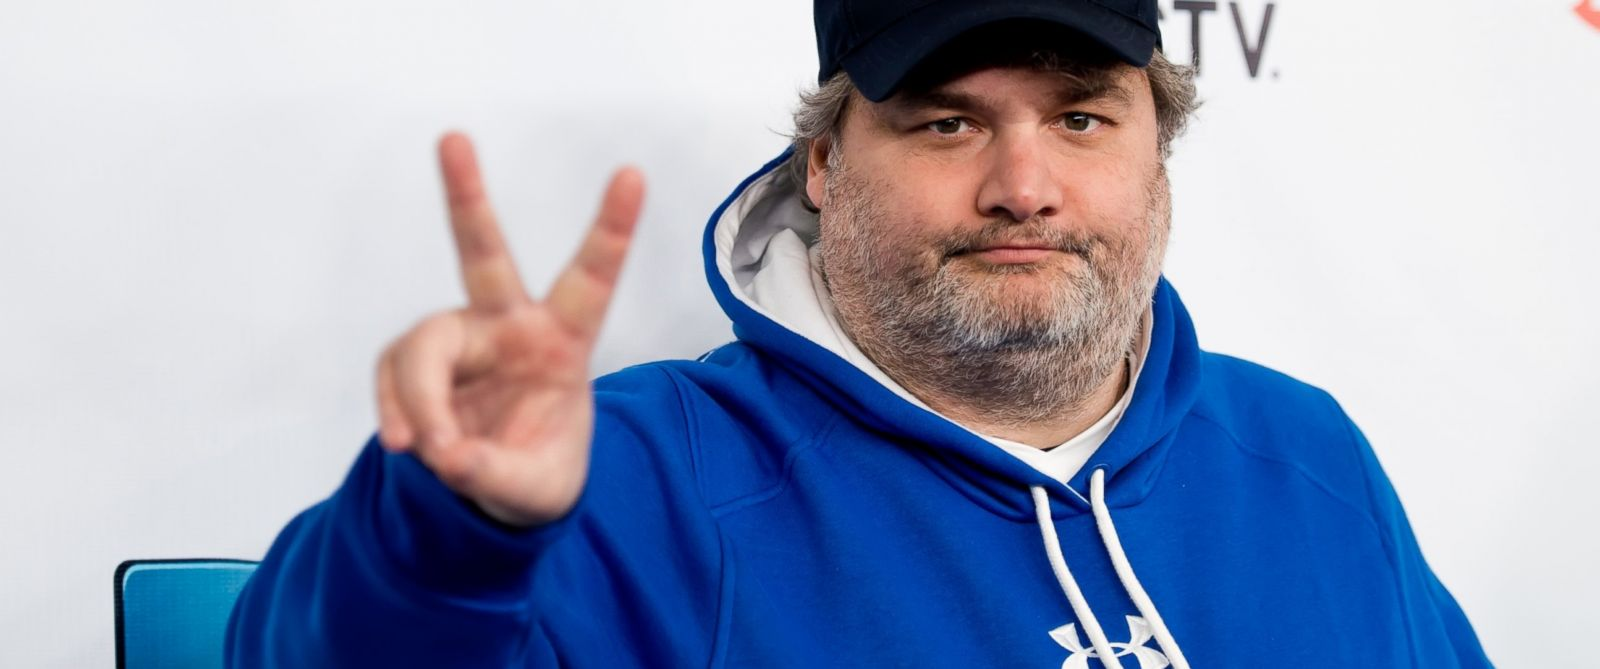 PHOTO: Actor Artie Lange attends DIRECTVs 8th Annual Celebrity Beach Bowl at Pier 40, Feb. 1, 2014 in New York City.